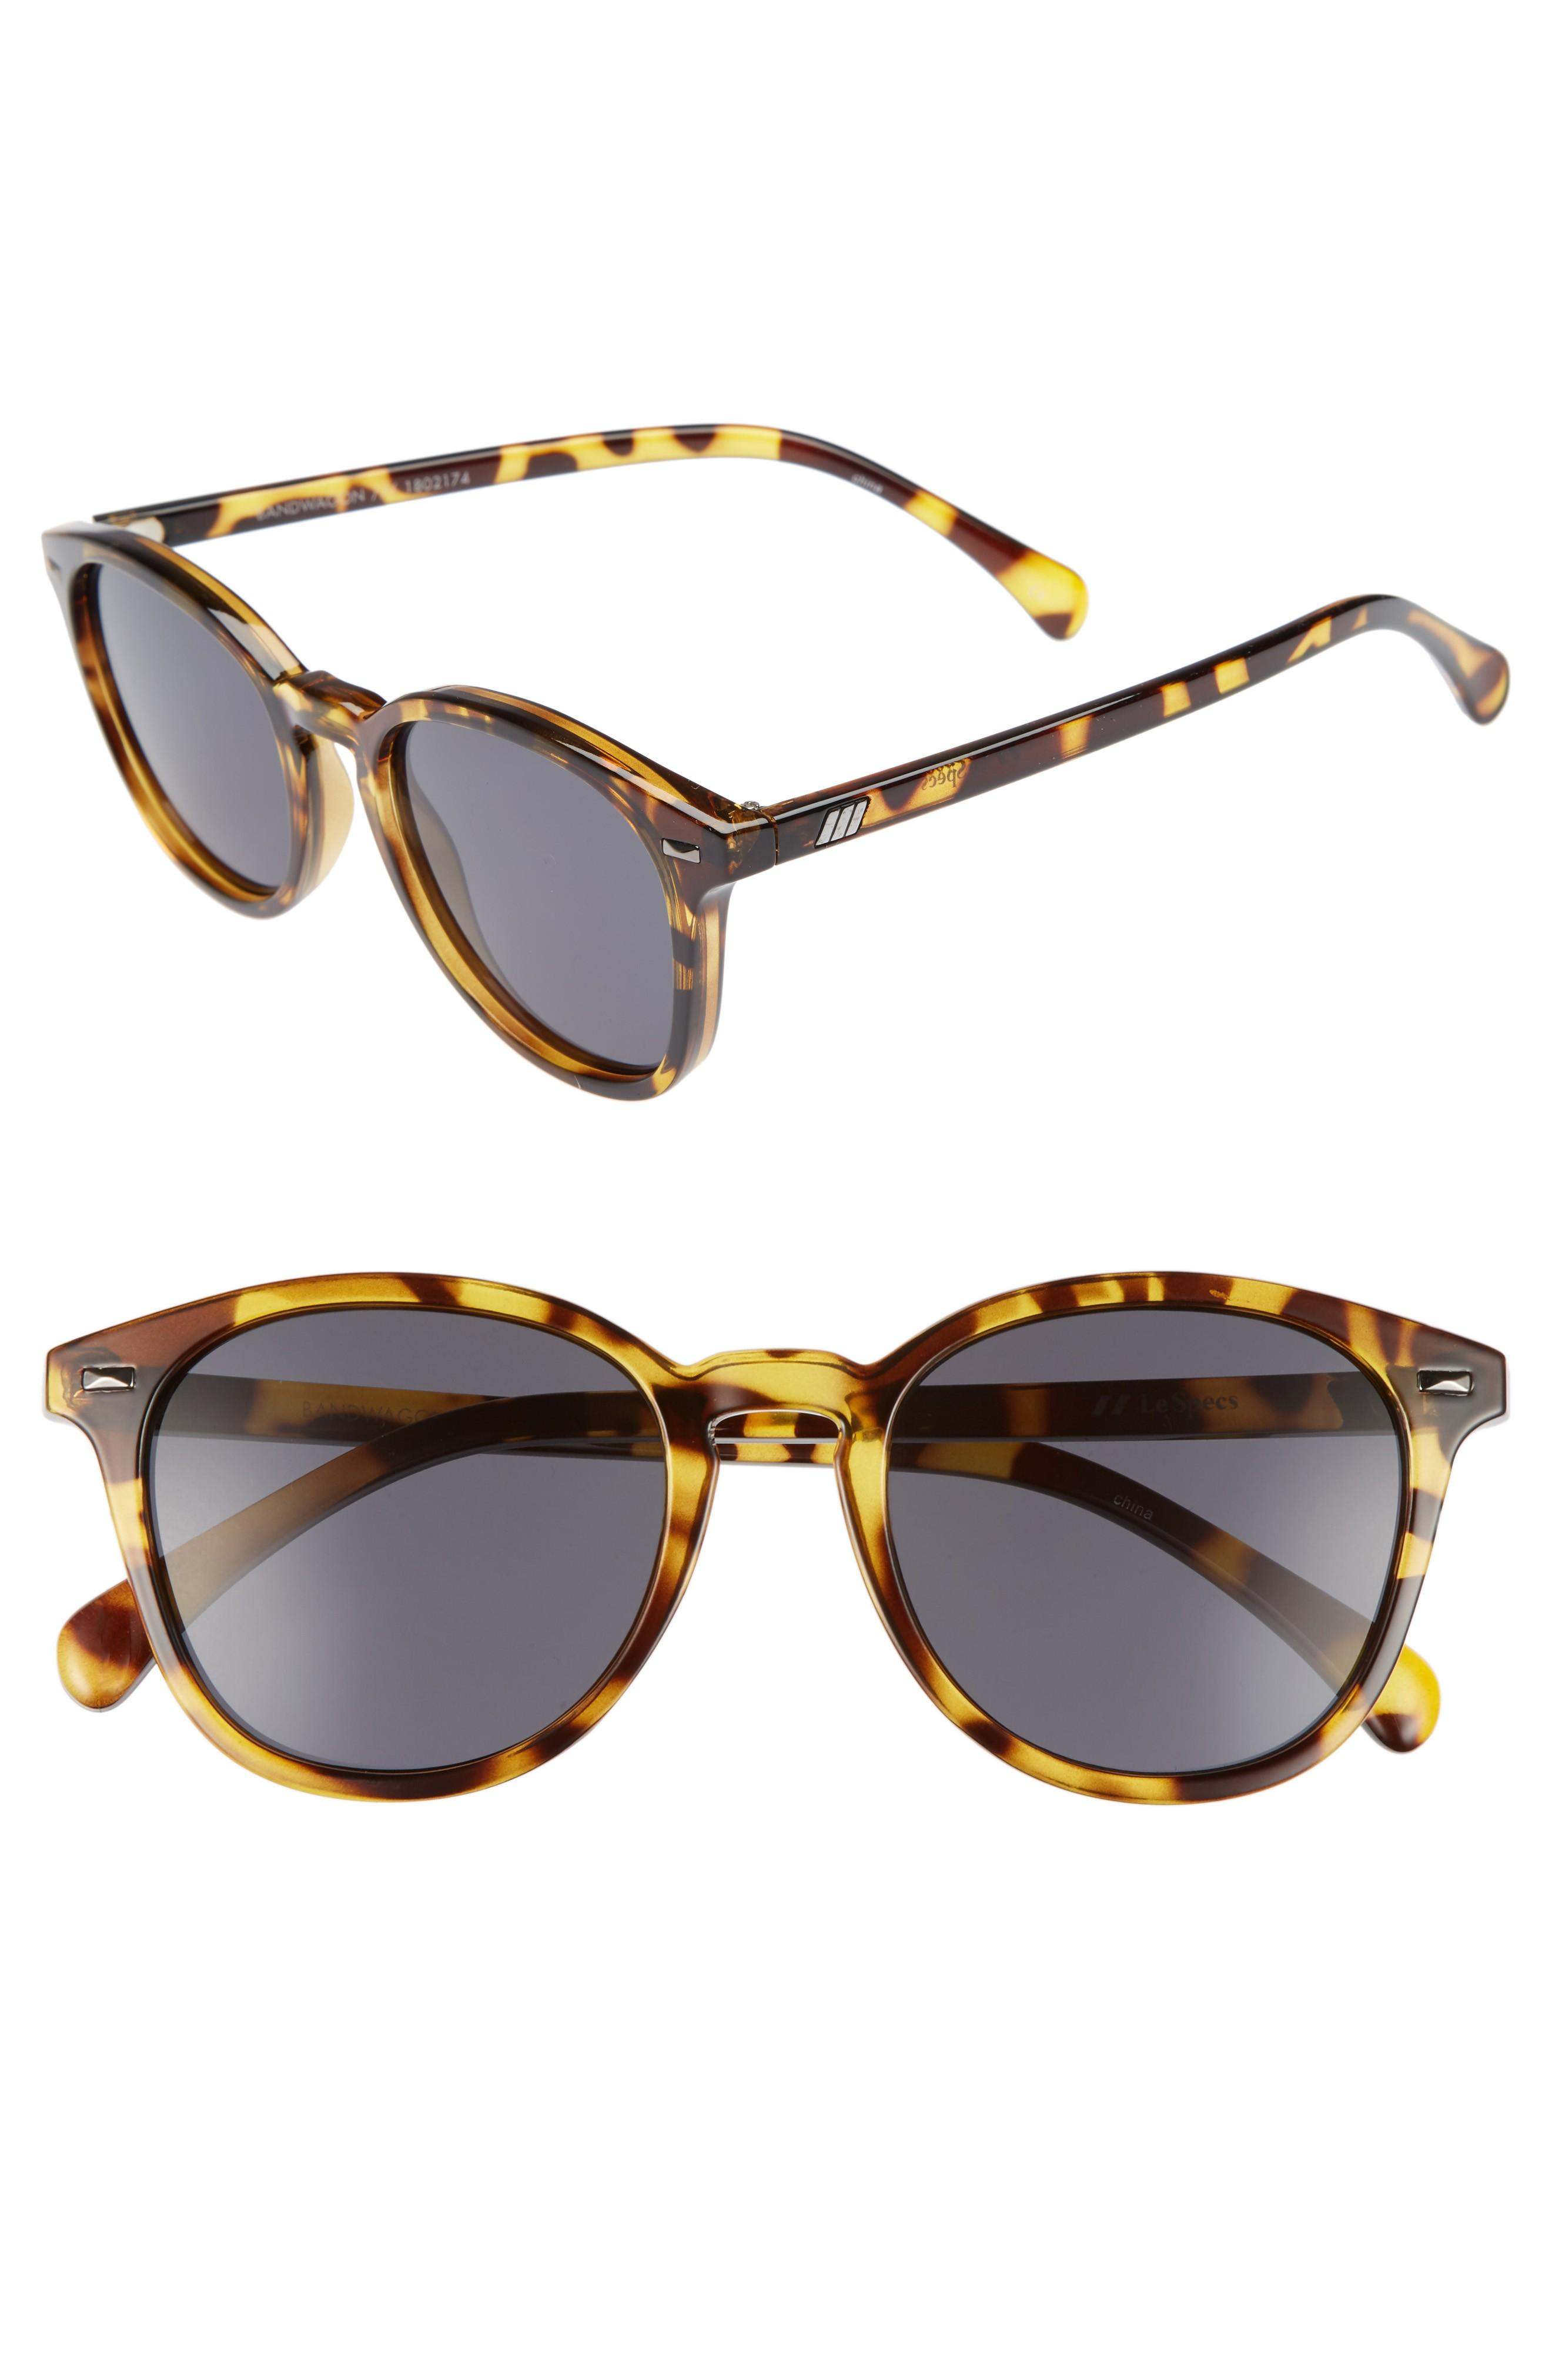 Le Specs Bandwagon 51mm Sunglasses In Syrup Tortoise